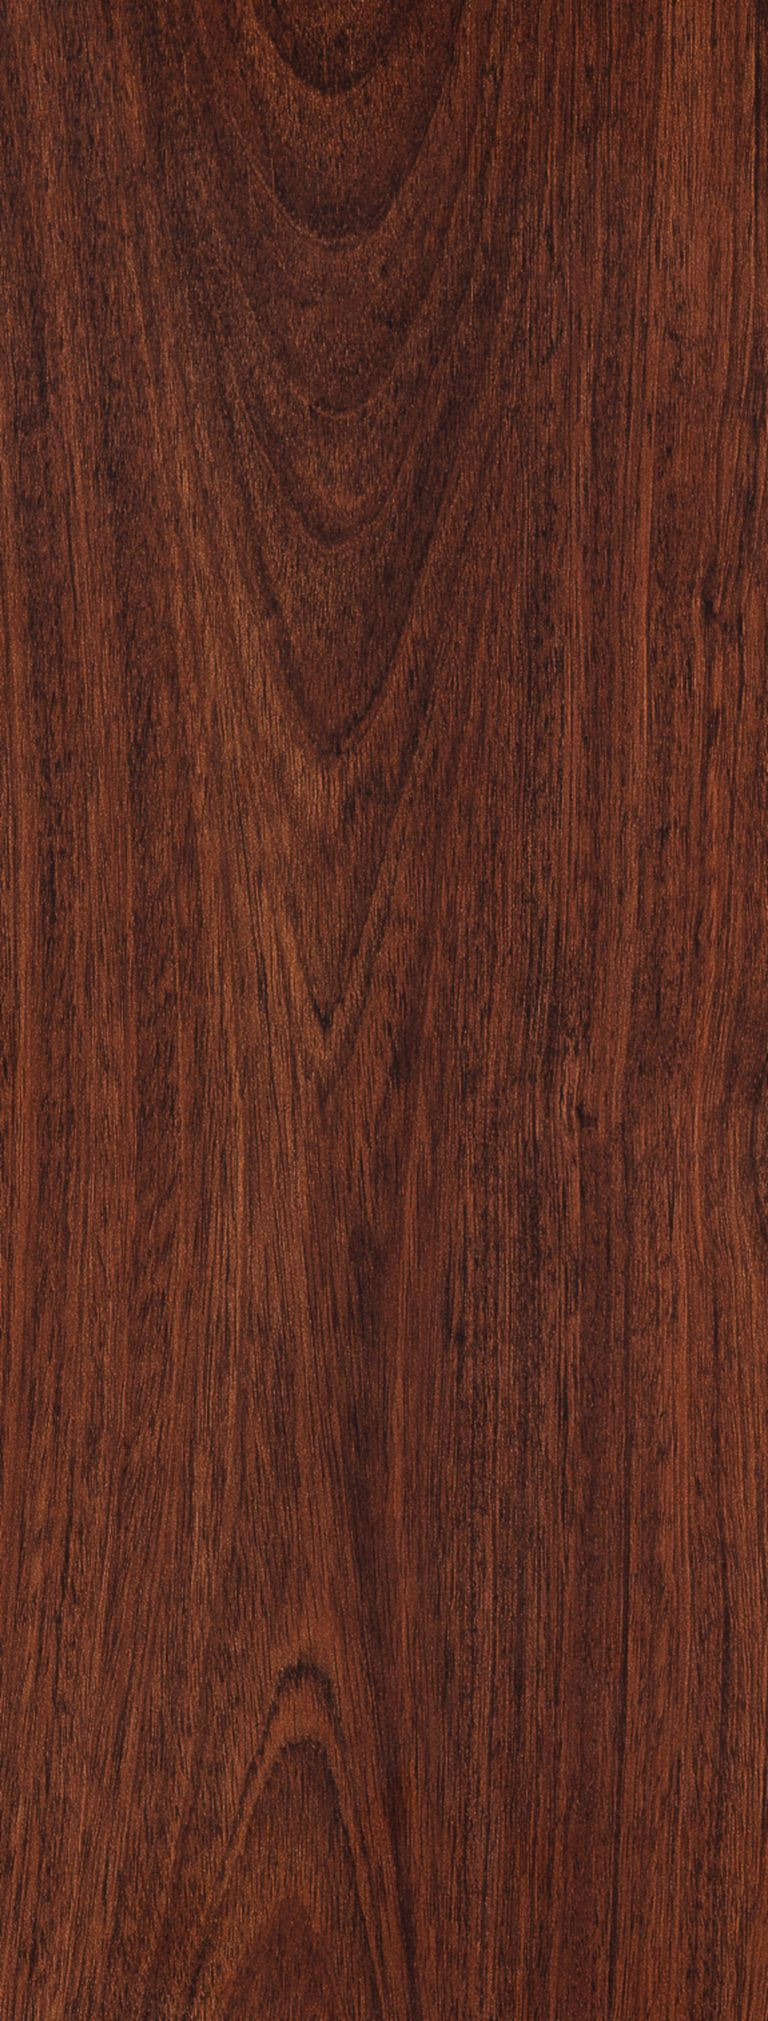 Exotics - Jatoba Select Laminate L6536